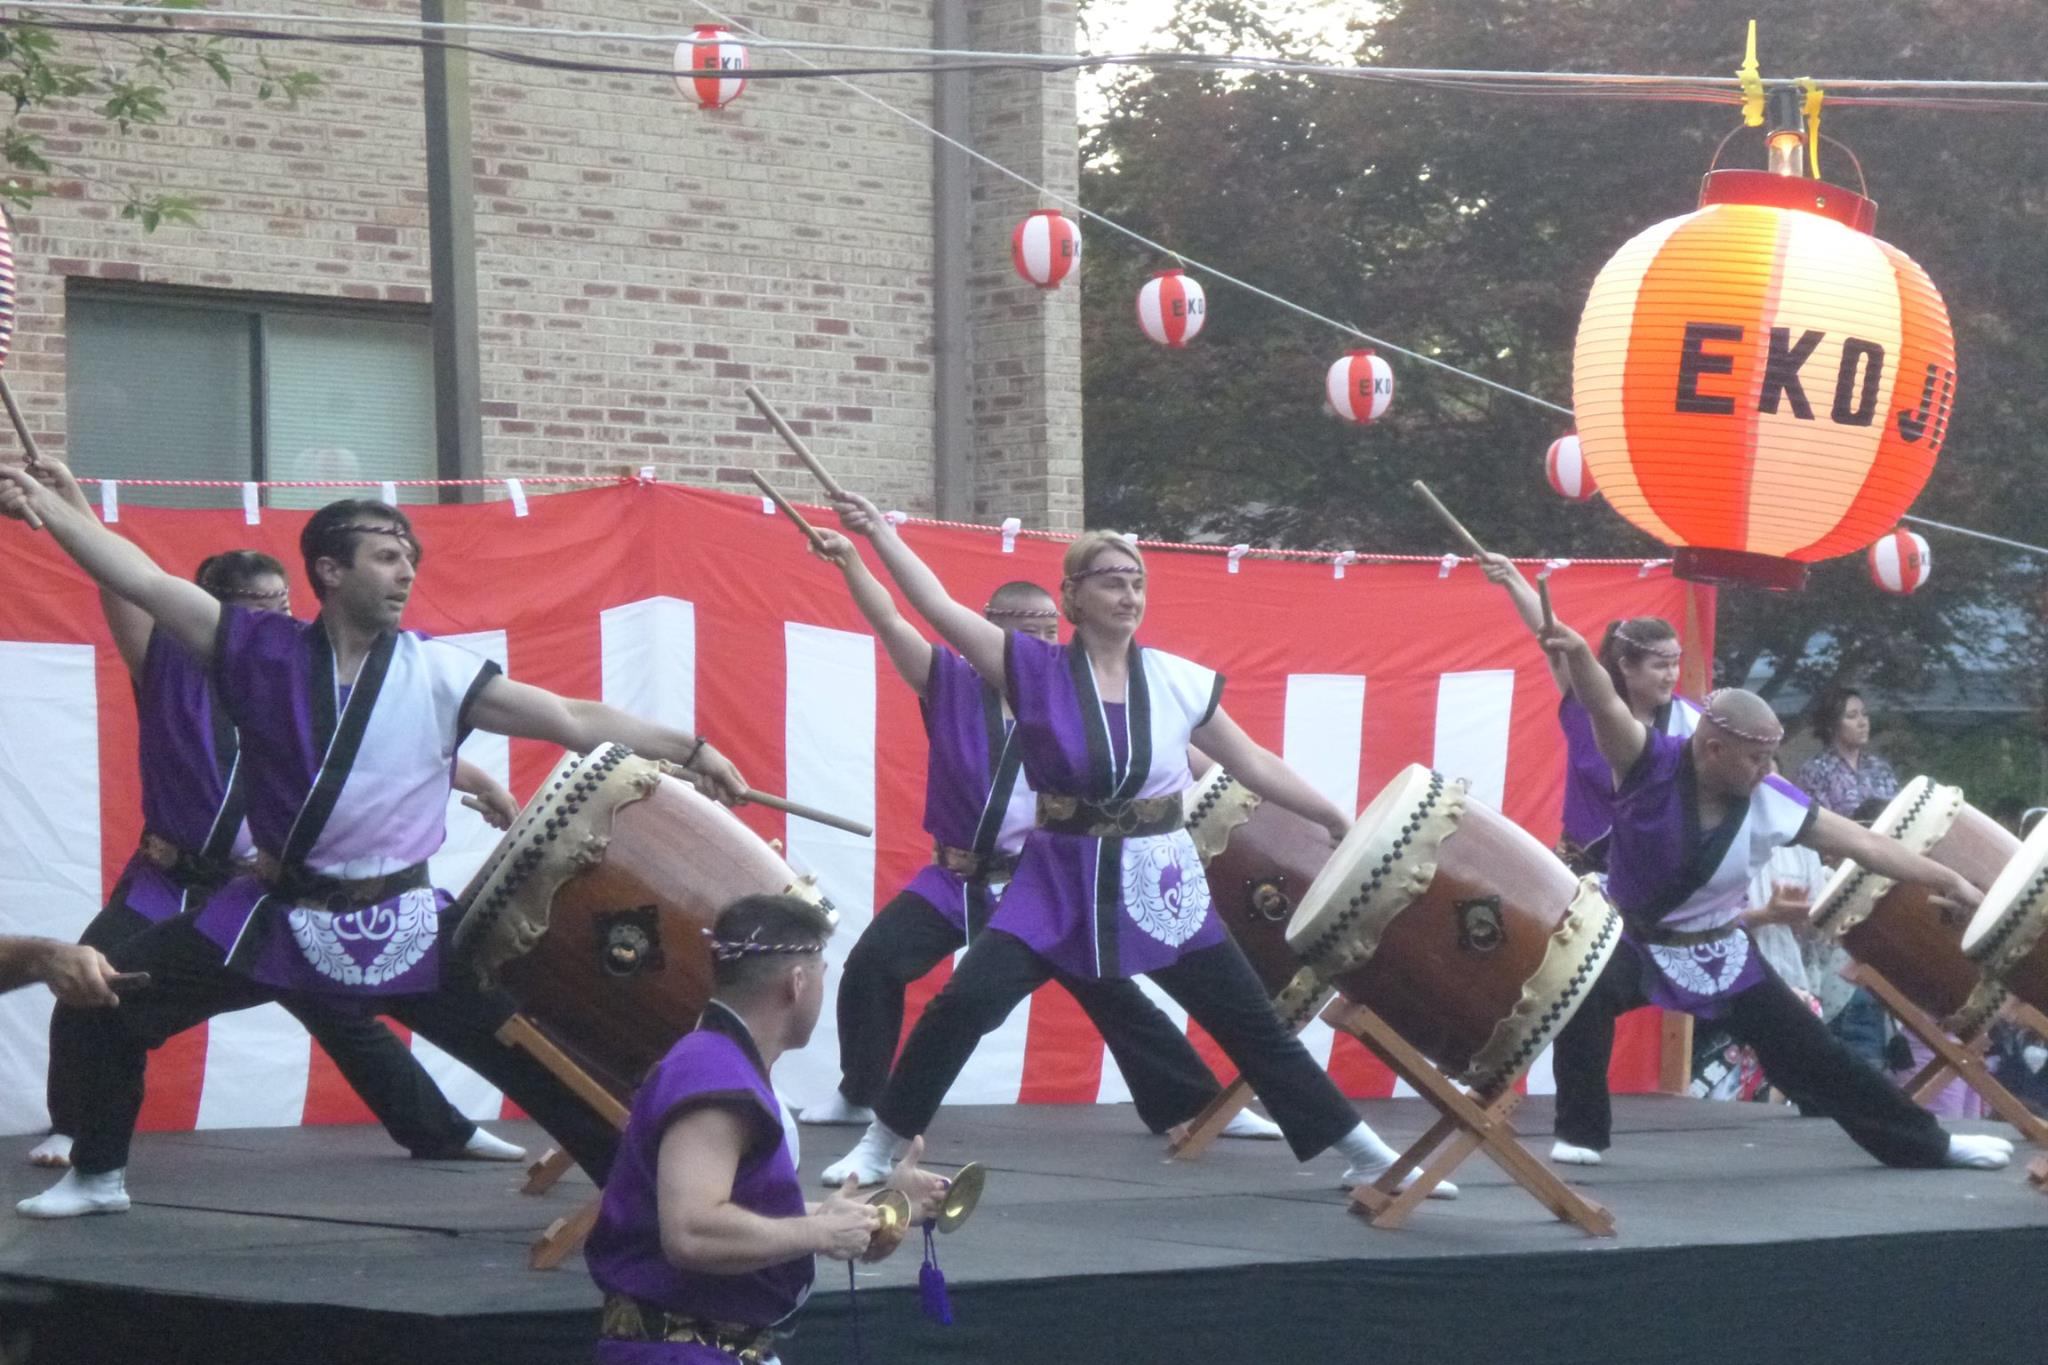 Nen Daiko playing Renshuu at the Obon Festival, July 2015